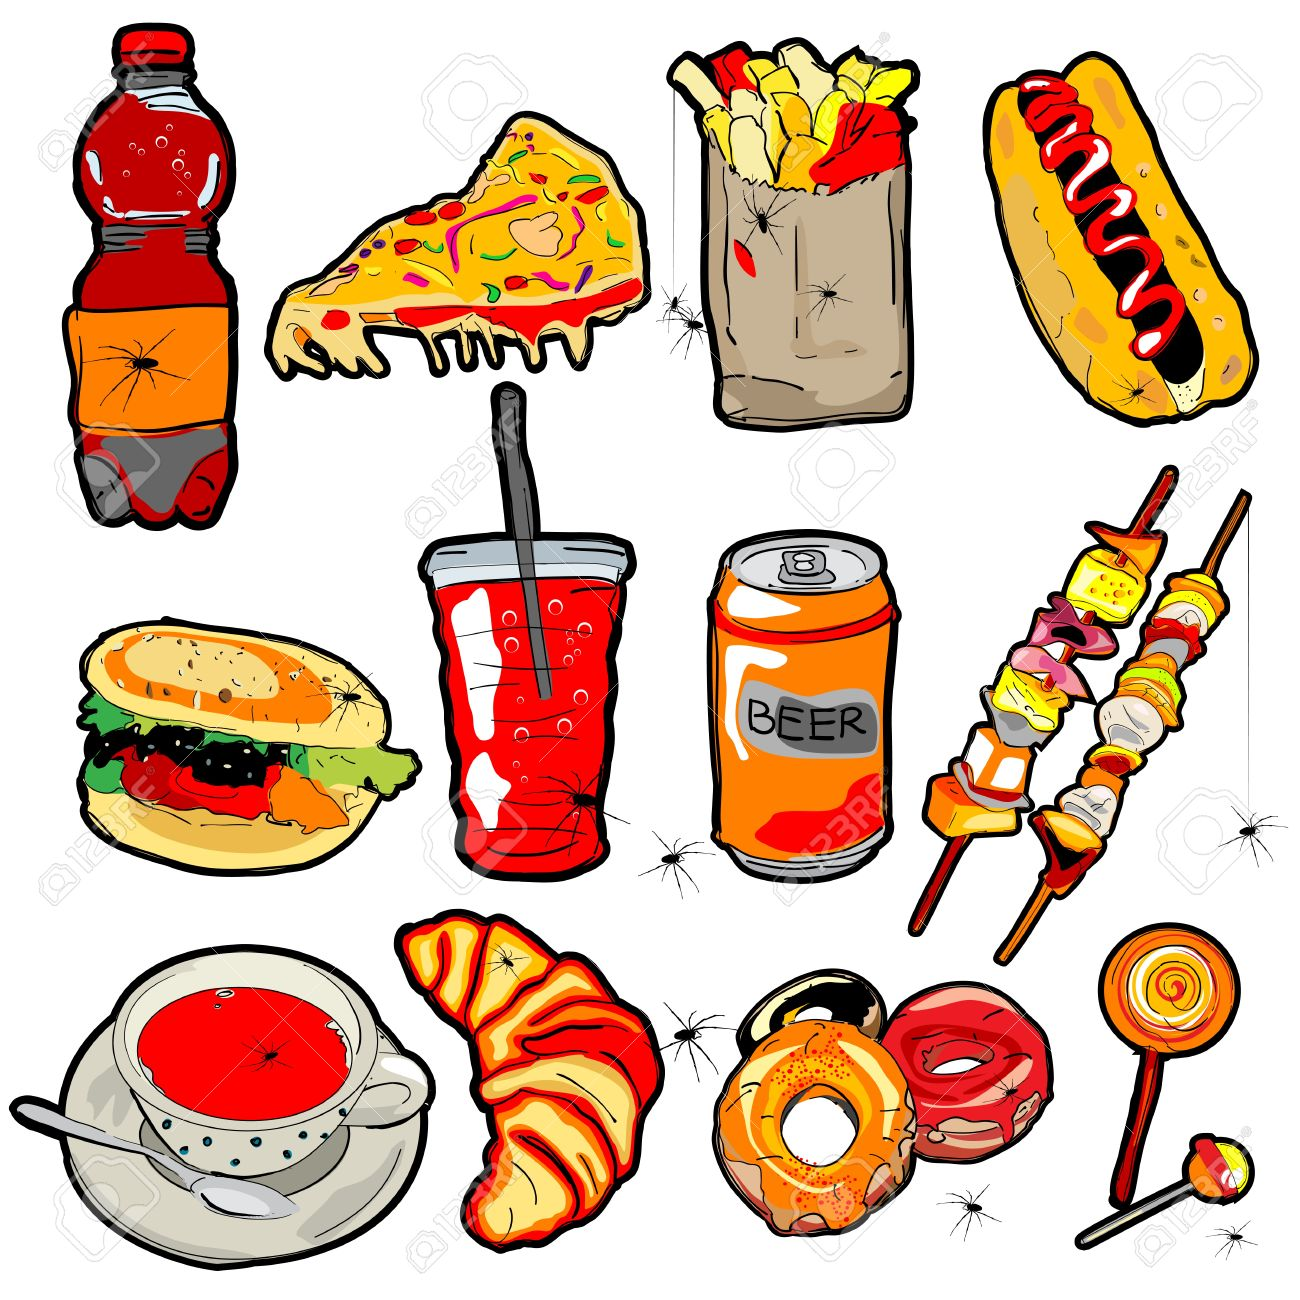 Halloween decoration clipart - Hand Drawn Scary Fast Food Elements For Halloween Decoration Stock Vector 16303800